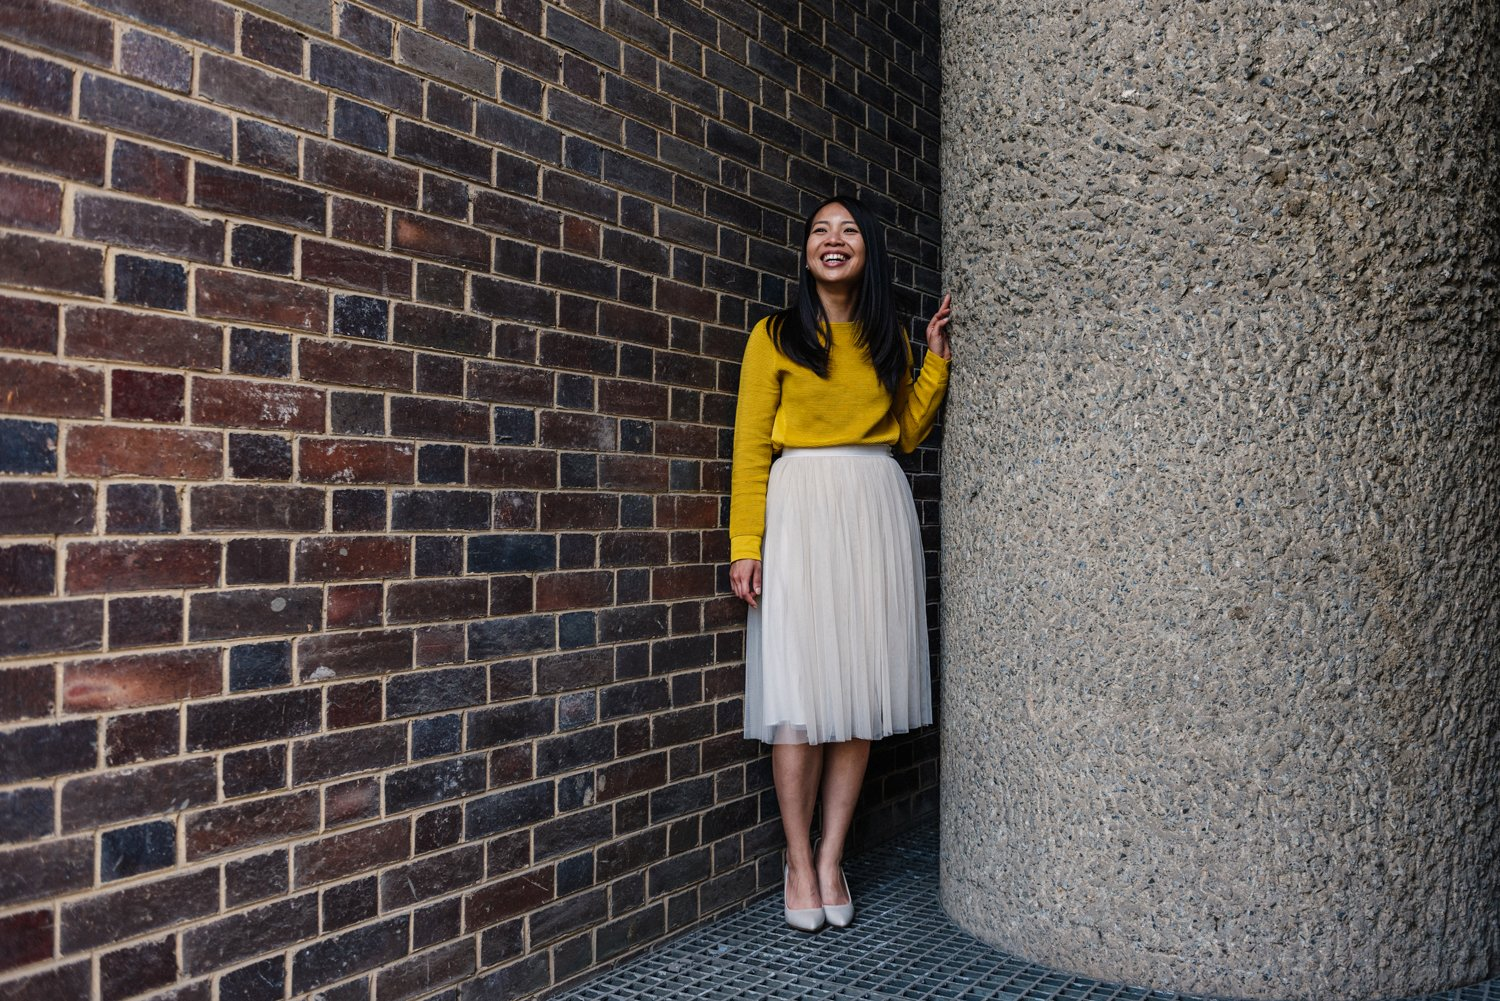 Fiancee smiling Barbican Estate London